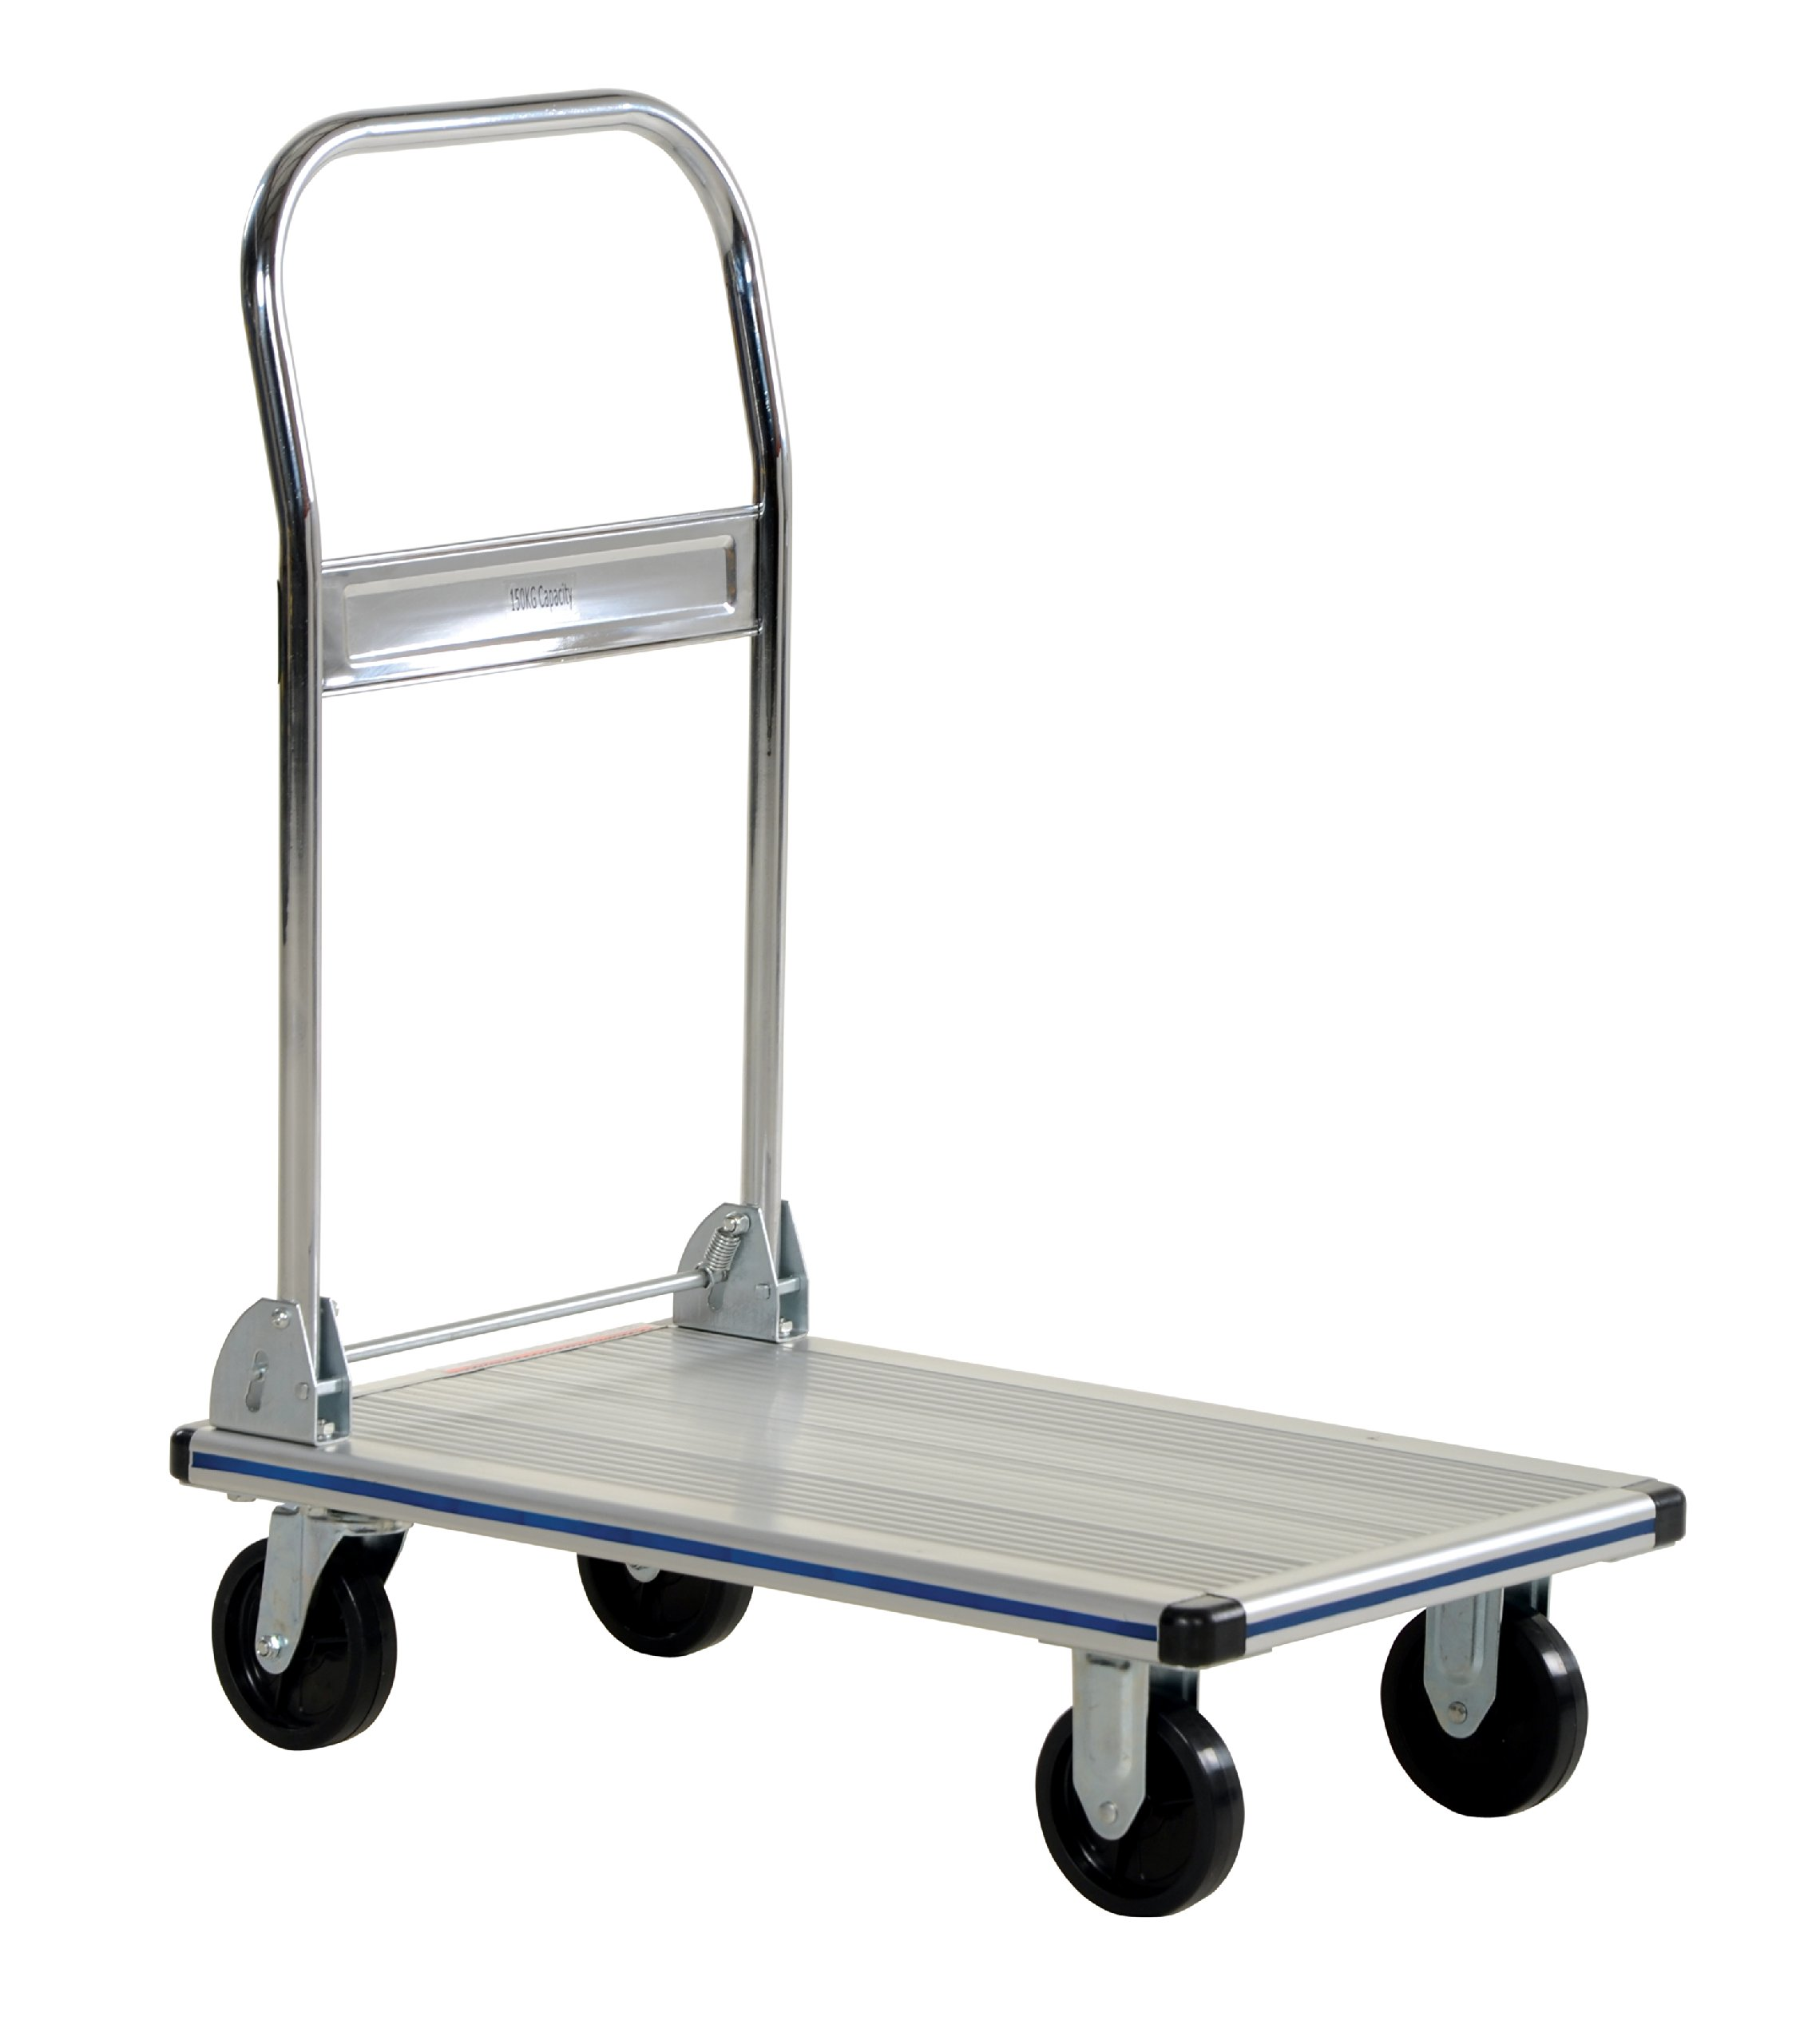 Vestil AFT-30-NM Aluminum Folding Platform Truck with Single Handle and 4'' Non-Marking Polyurethane Casters, 400 lbs Capacity, 30'' Length x 18-1/2'' Width x 6-5/16'' Height